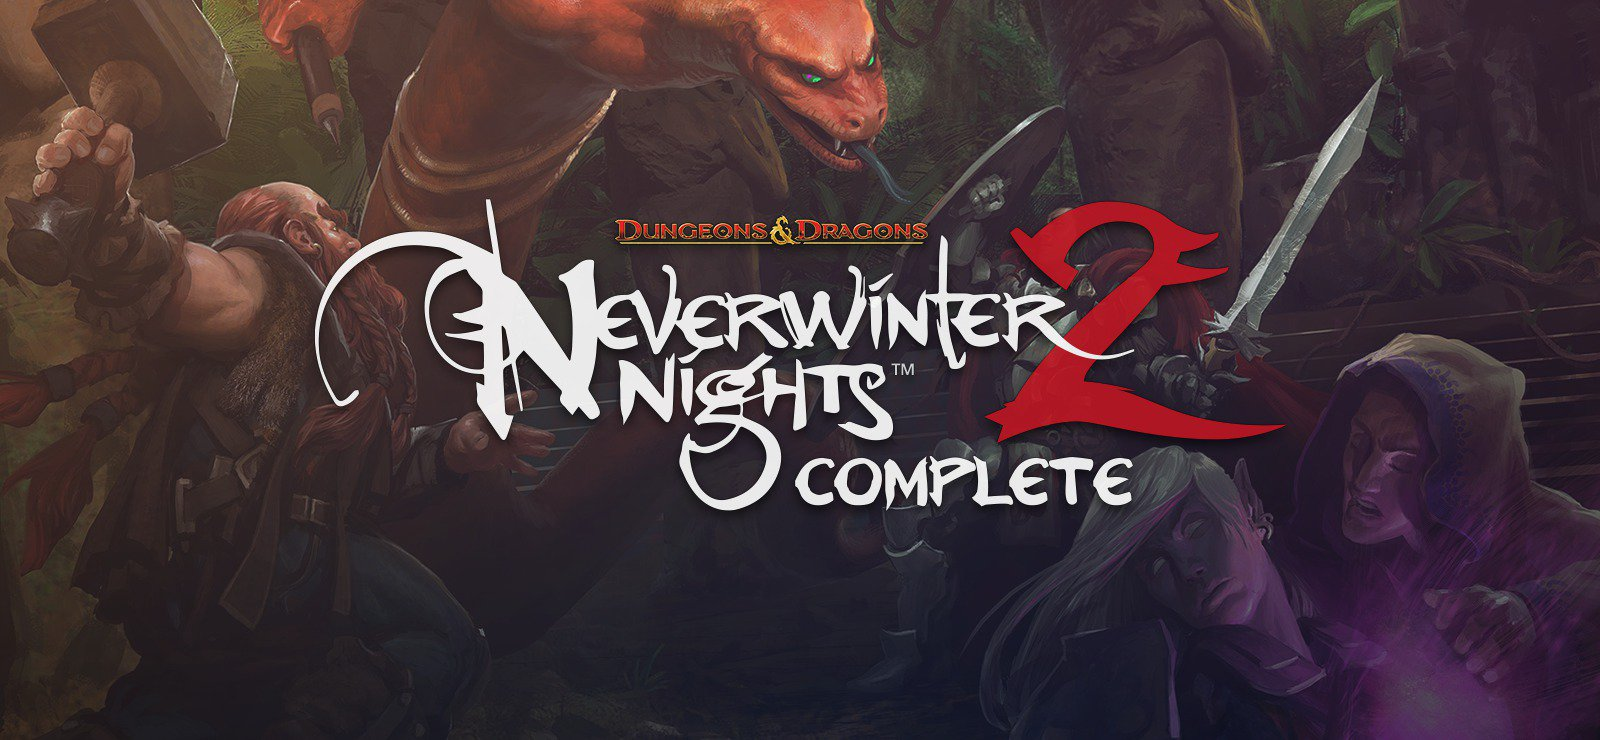 dungeons & dragons never winter nights complete 2